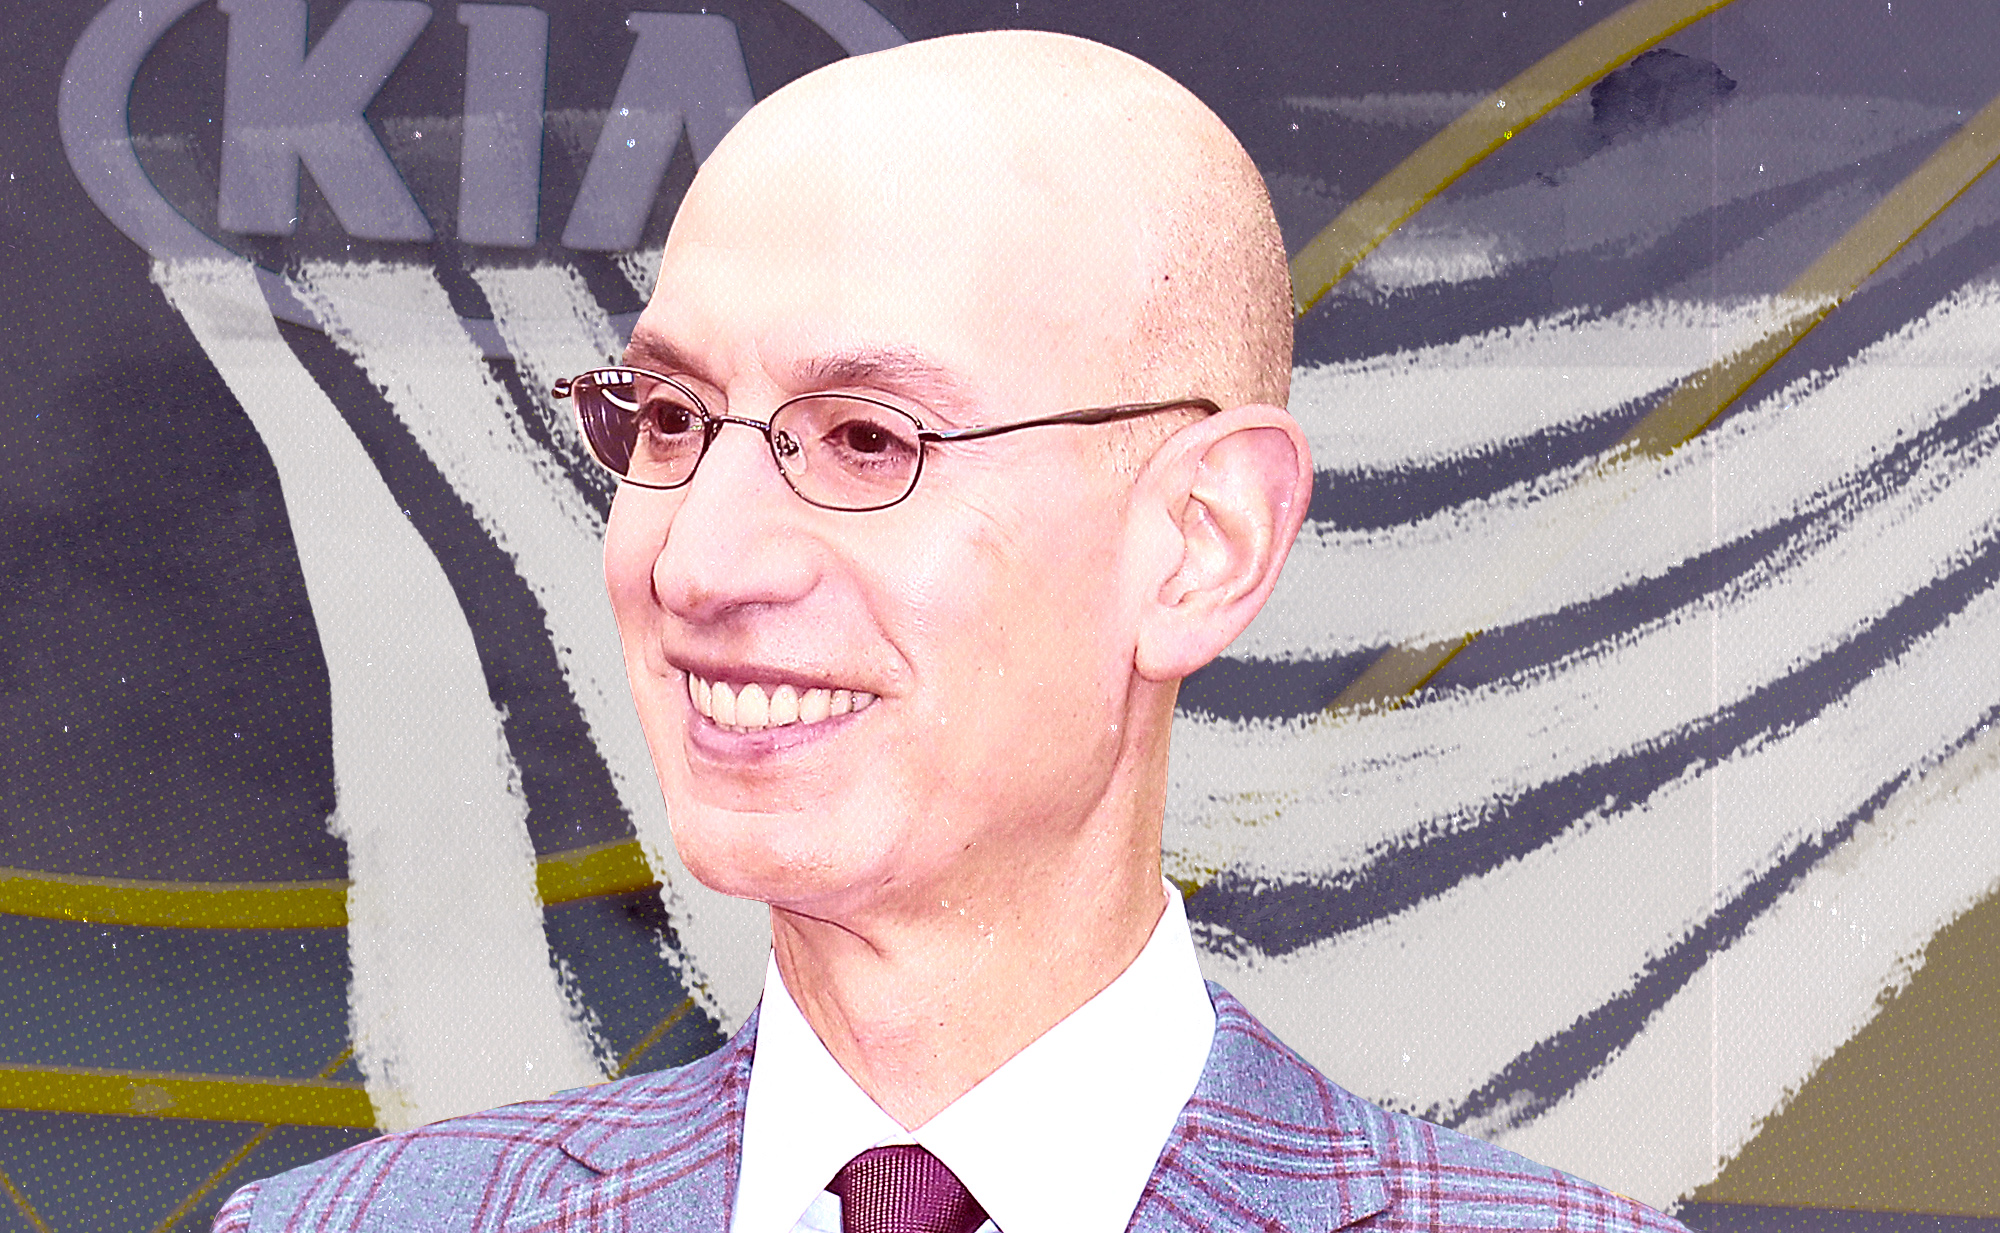 Adam Silver smiles against a superimposed background.